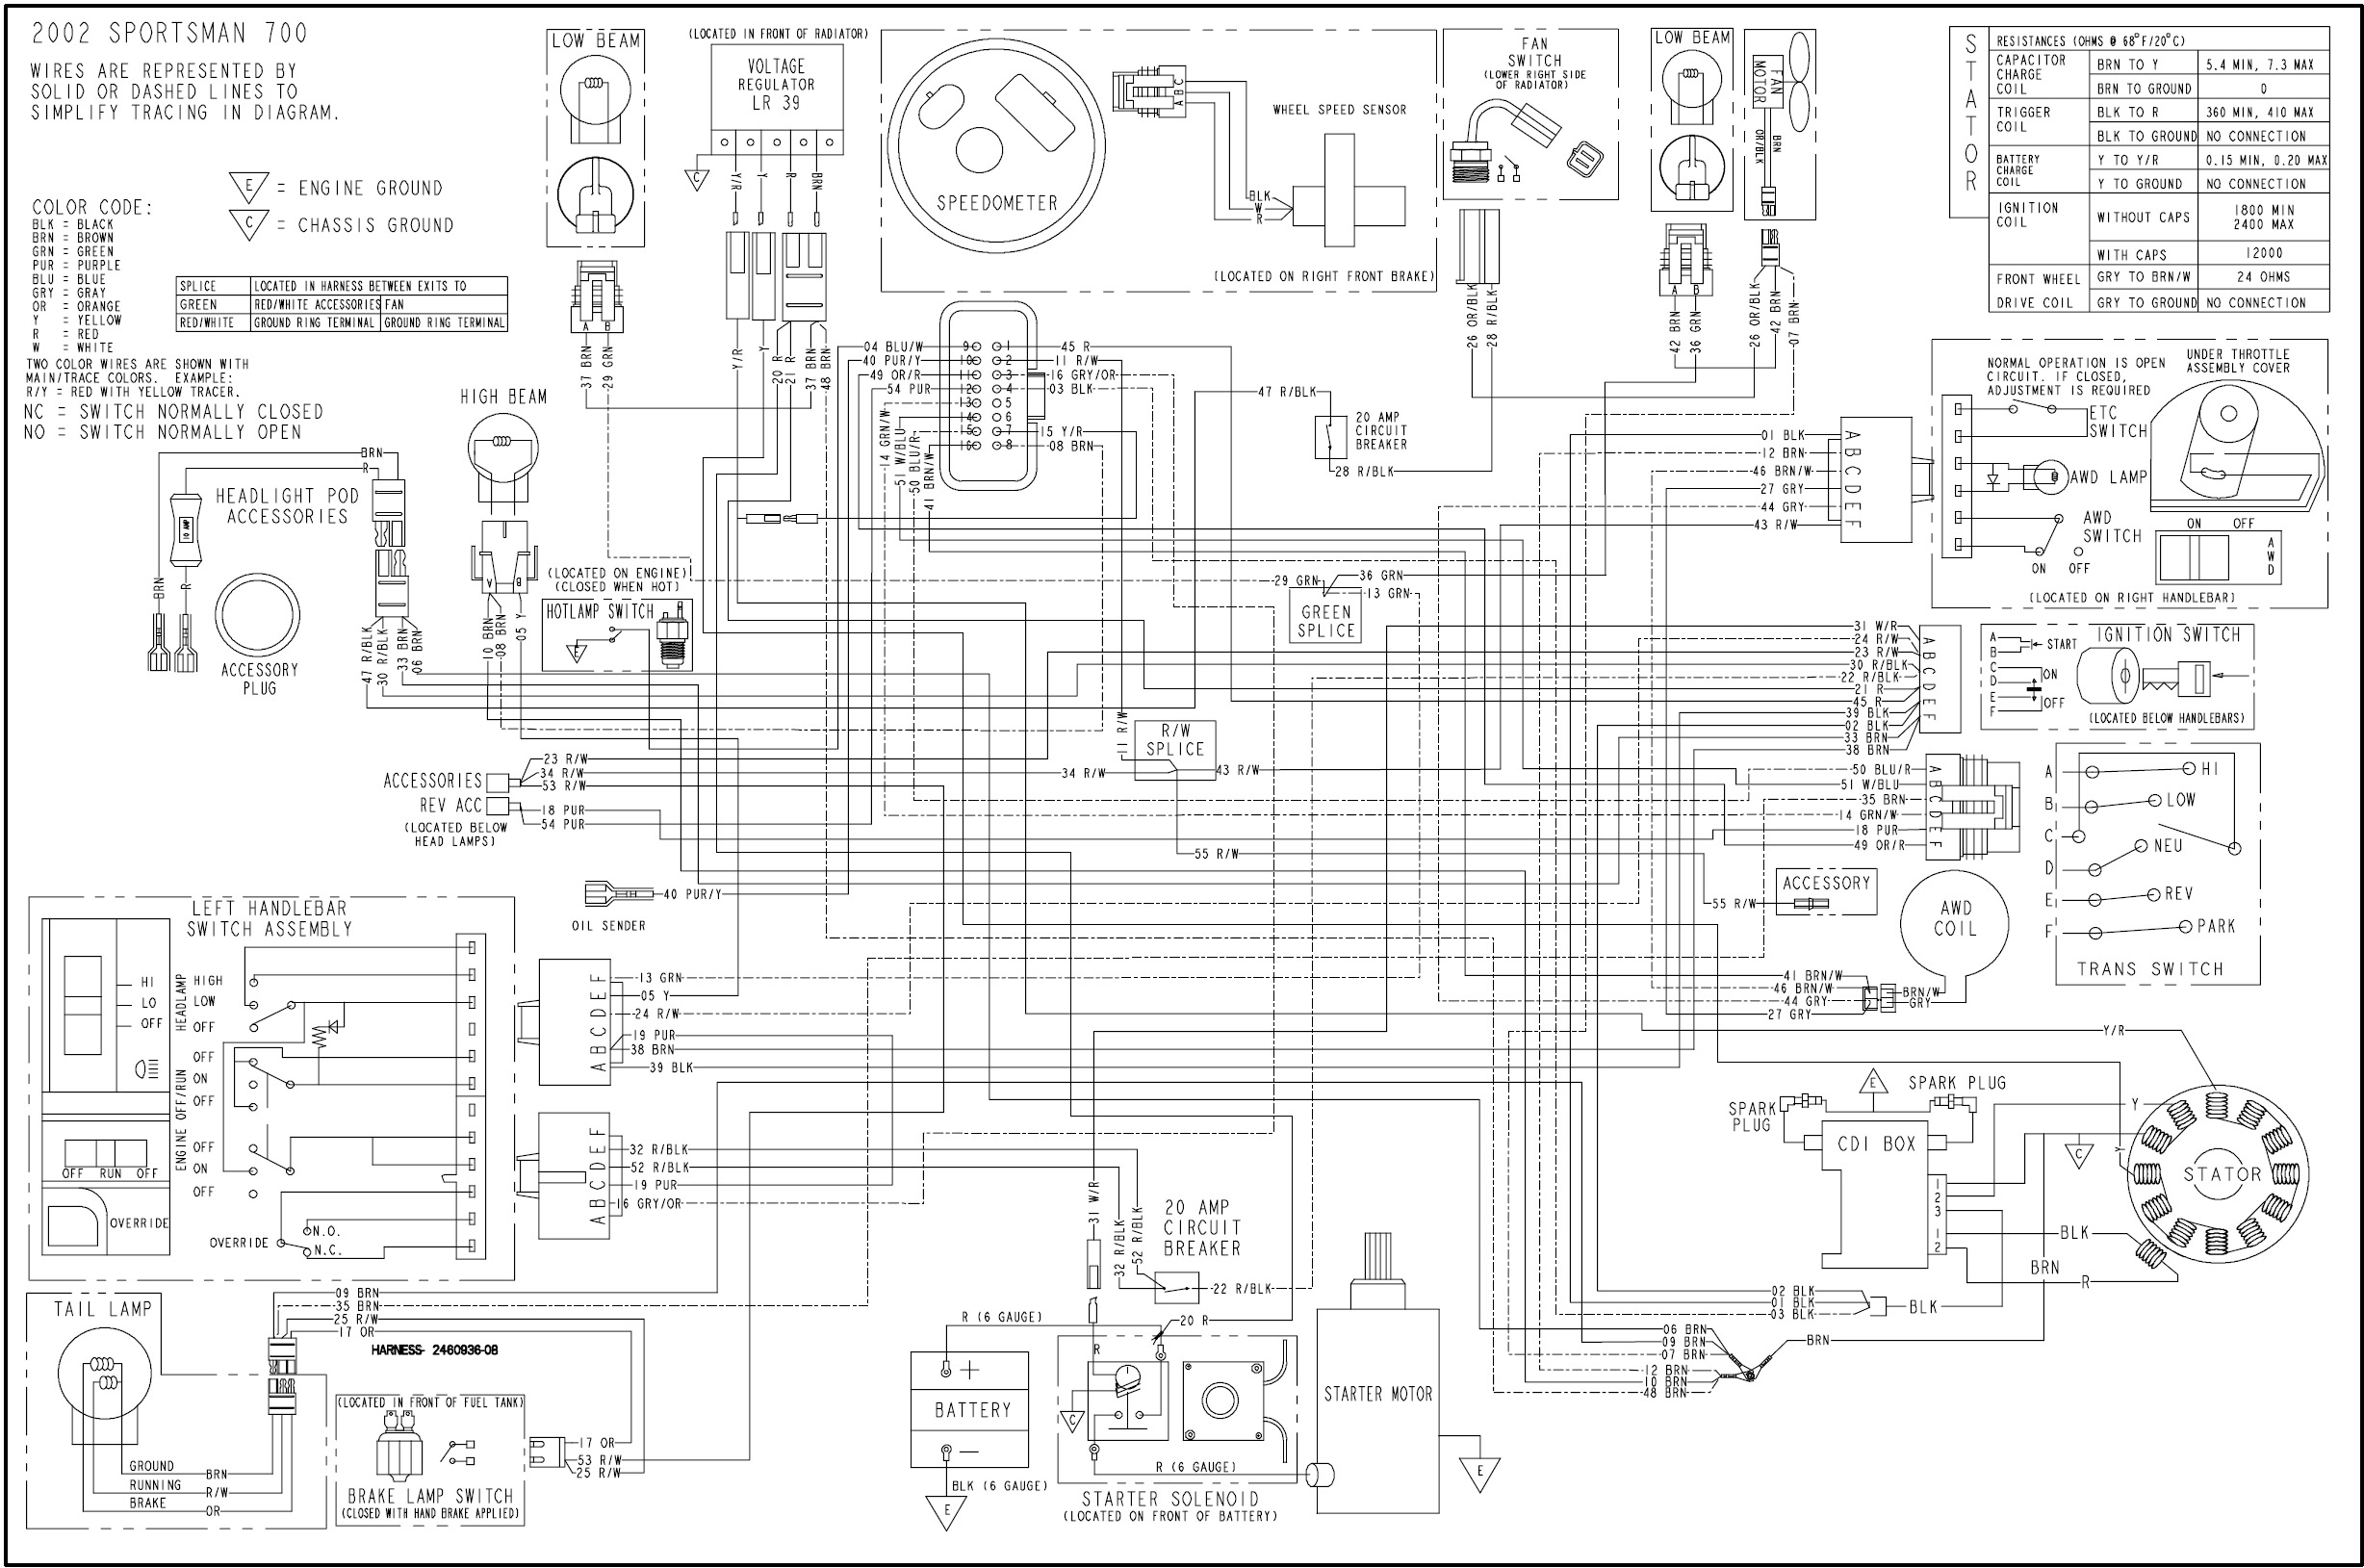 75754d1491234477 2001 sportsman 700 twin no start 2002_polaris_sportsman_700_wiring_diagram polaris wire harness drlete,wire \u2022 j squared co 2002 polaris sportsman 500 wiring diagram at n-0.co